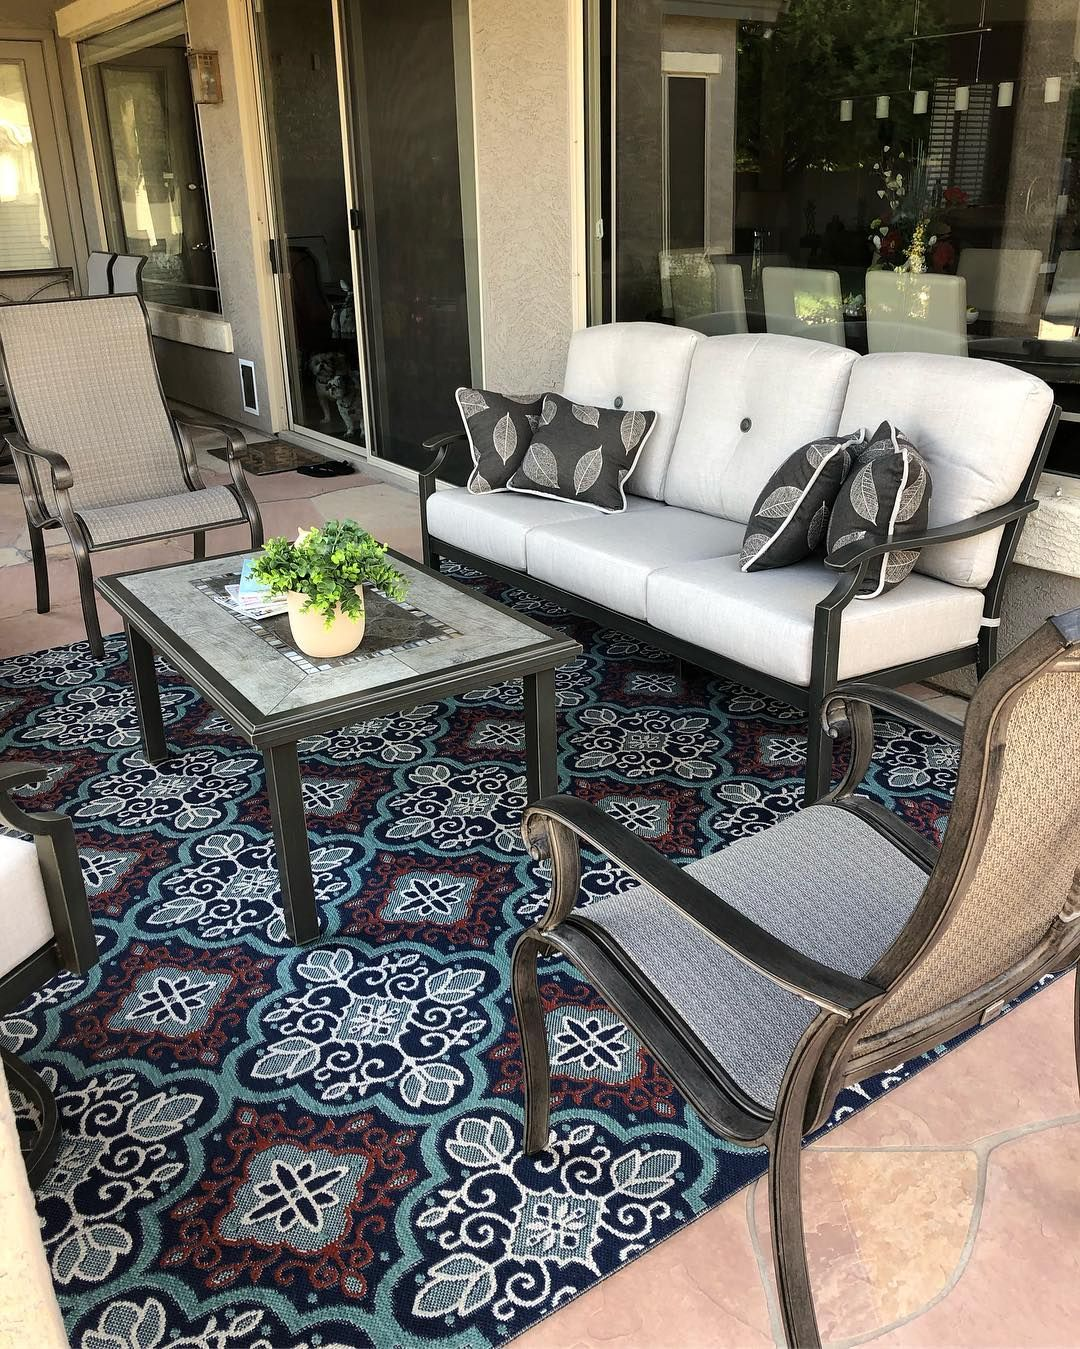 New The 10 Best Home Decor (with Pictures) - When we ... on New Vision Outdoor Living id=17050